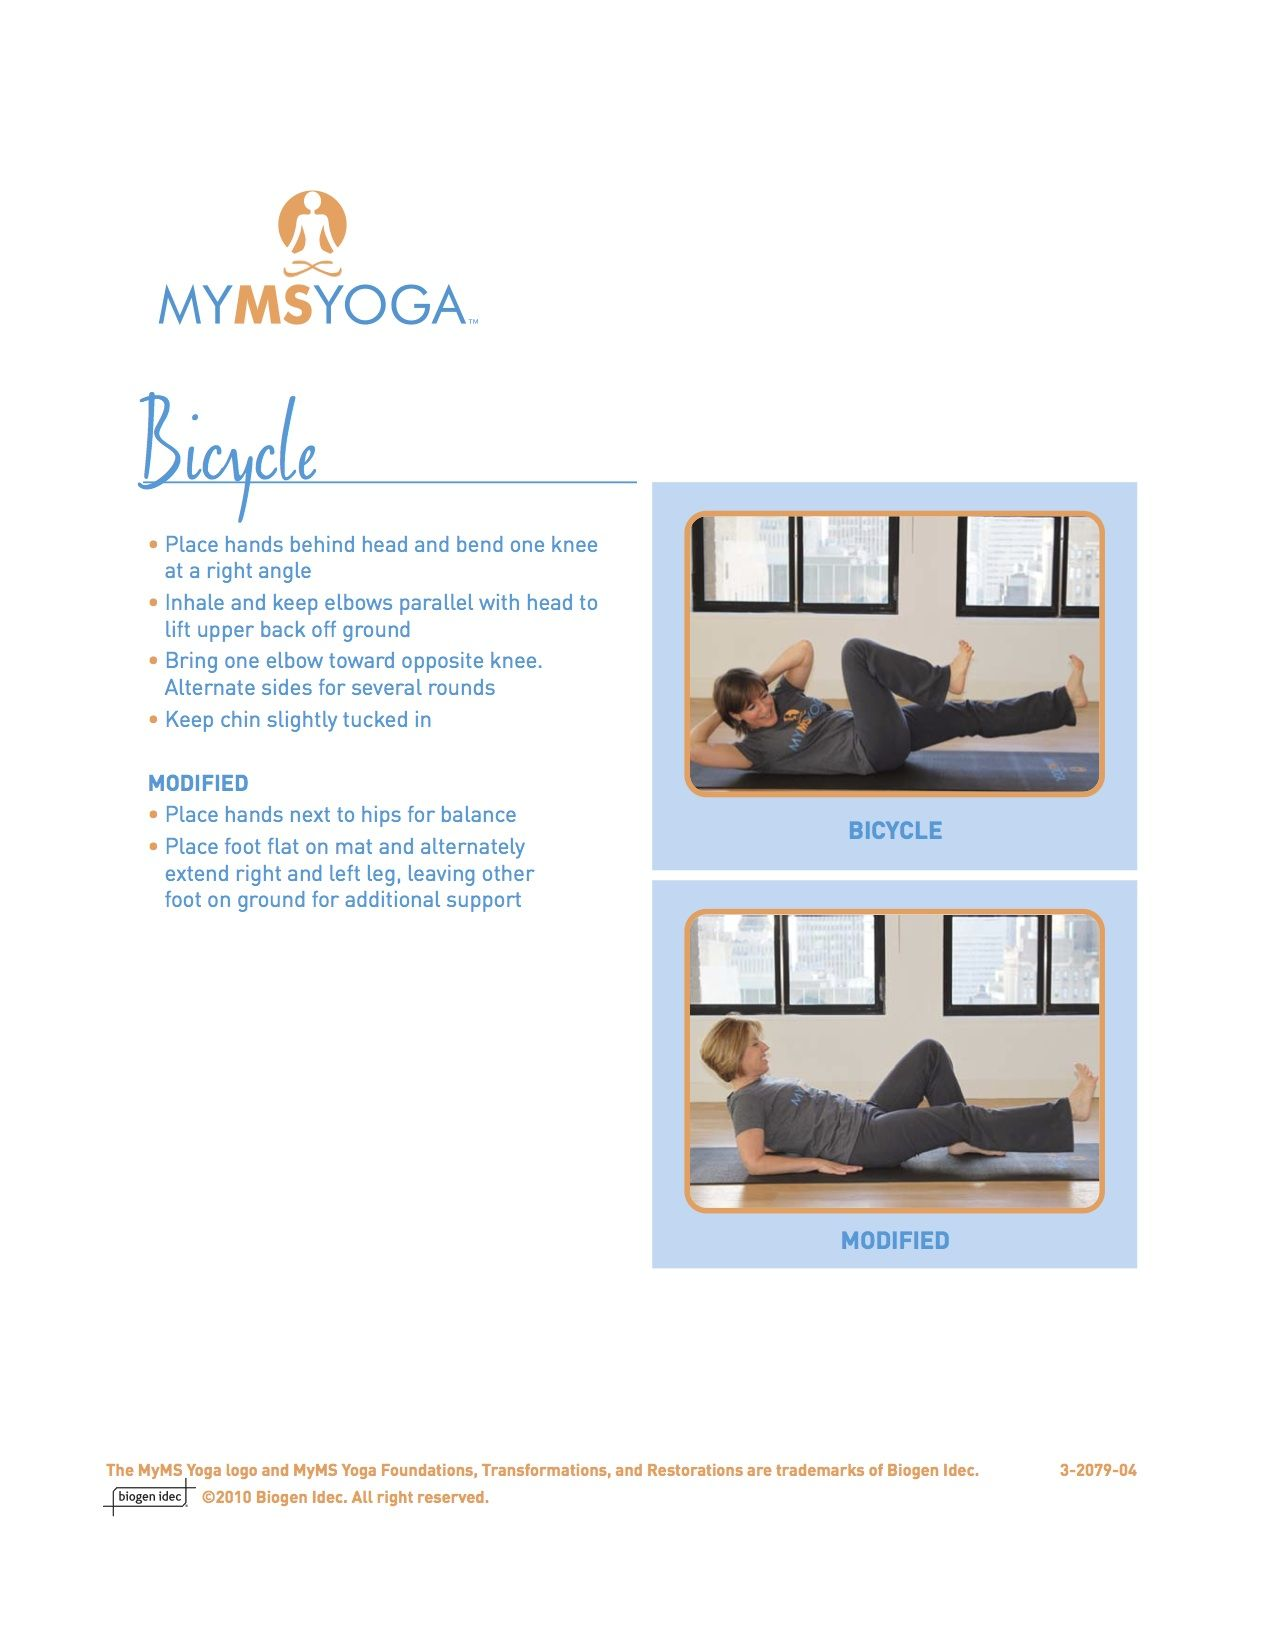 Bicycle Yoga Pose For People With Multiple Sclerosis Yoga Poses Yoga Lifestyle Multiple Sclerosis